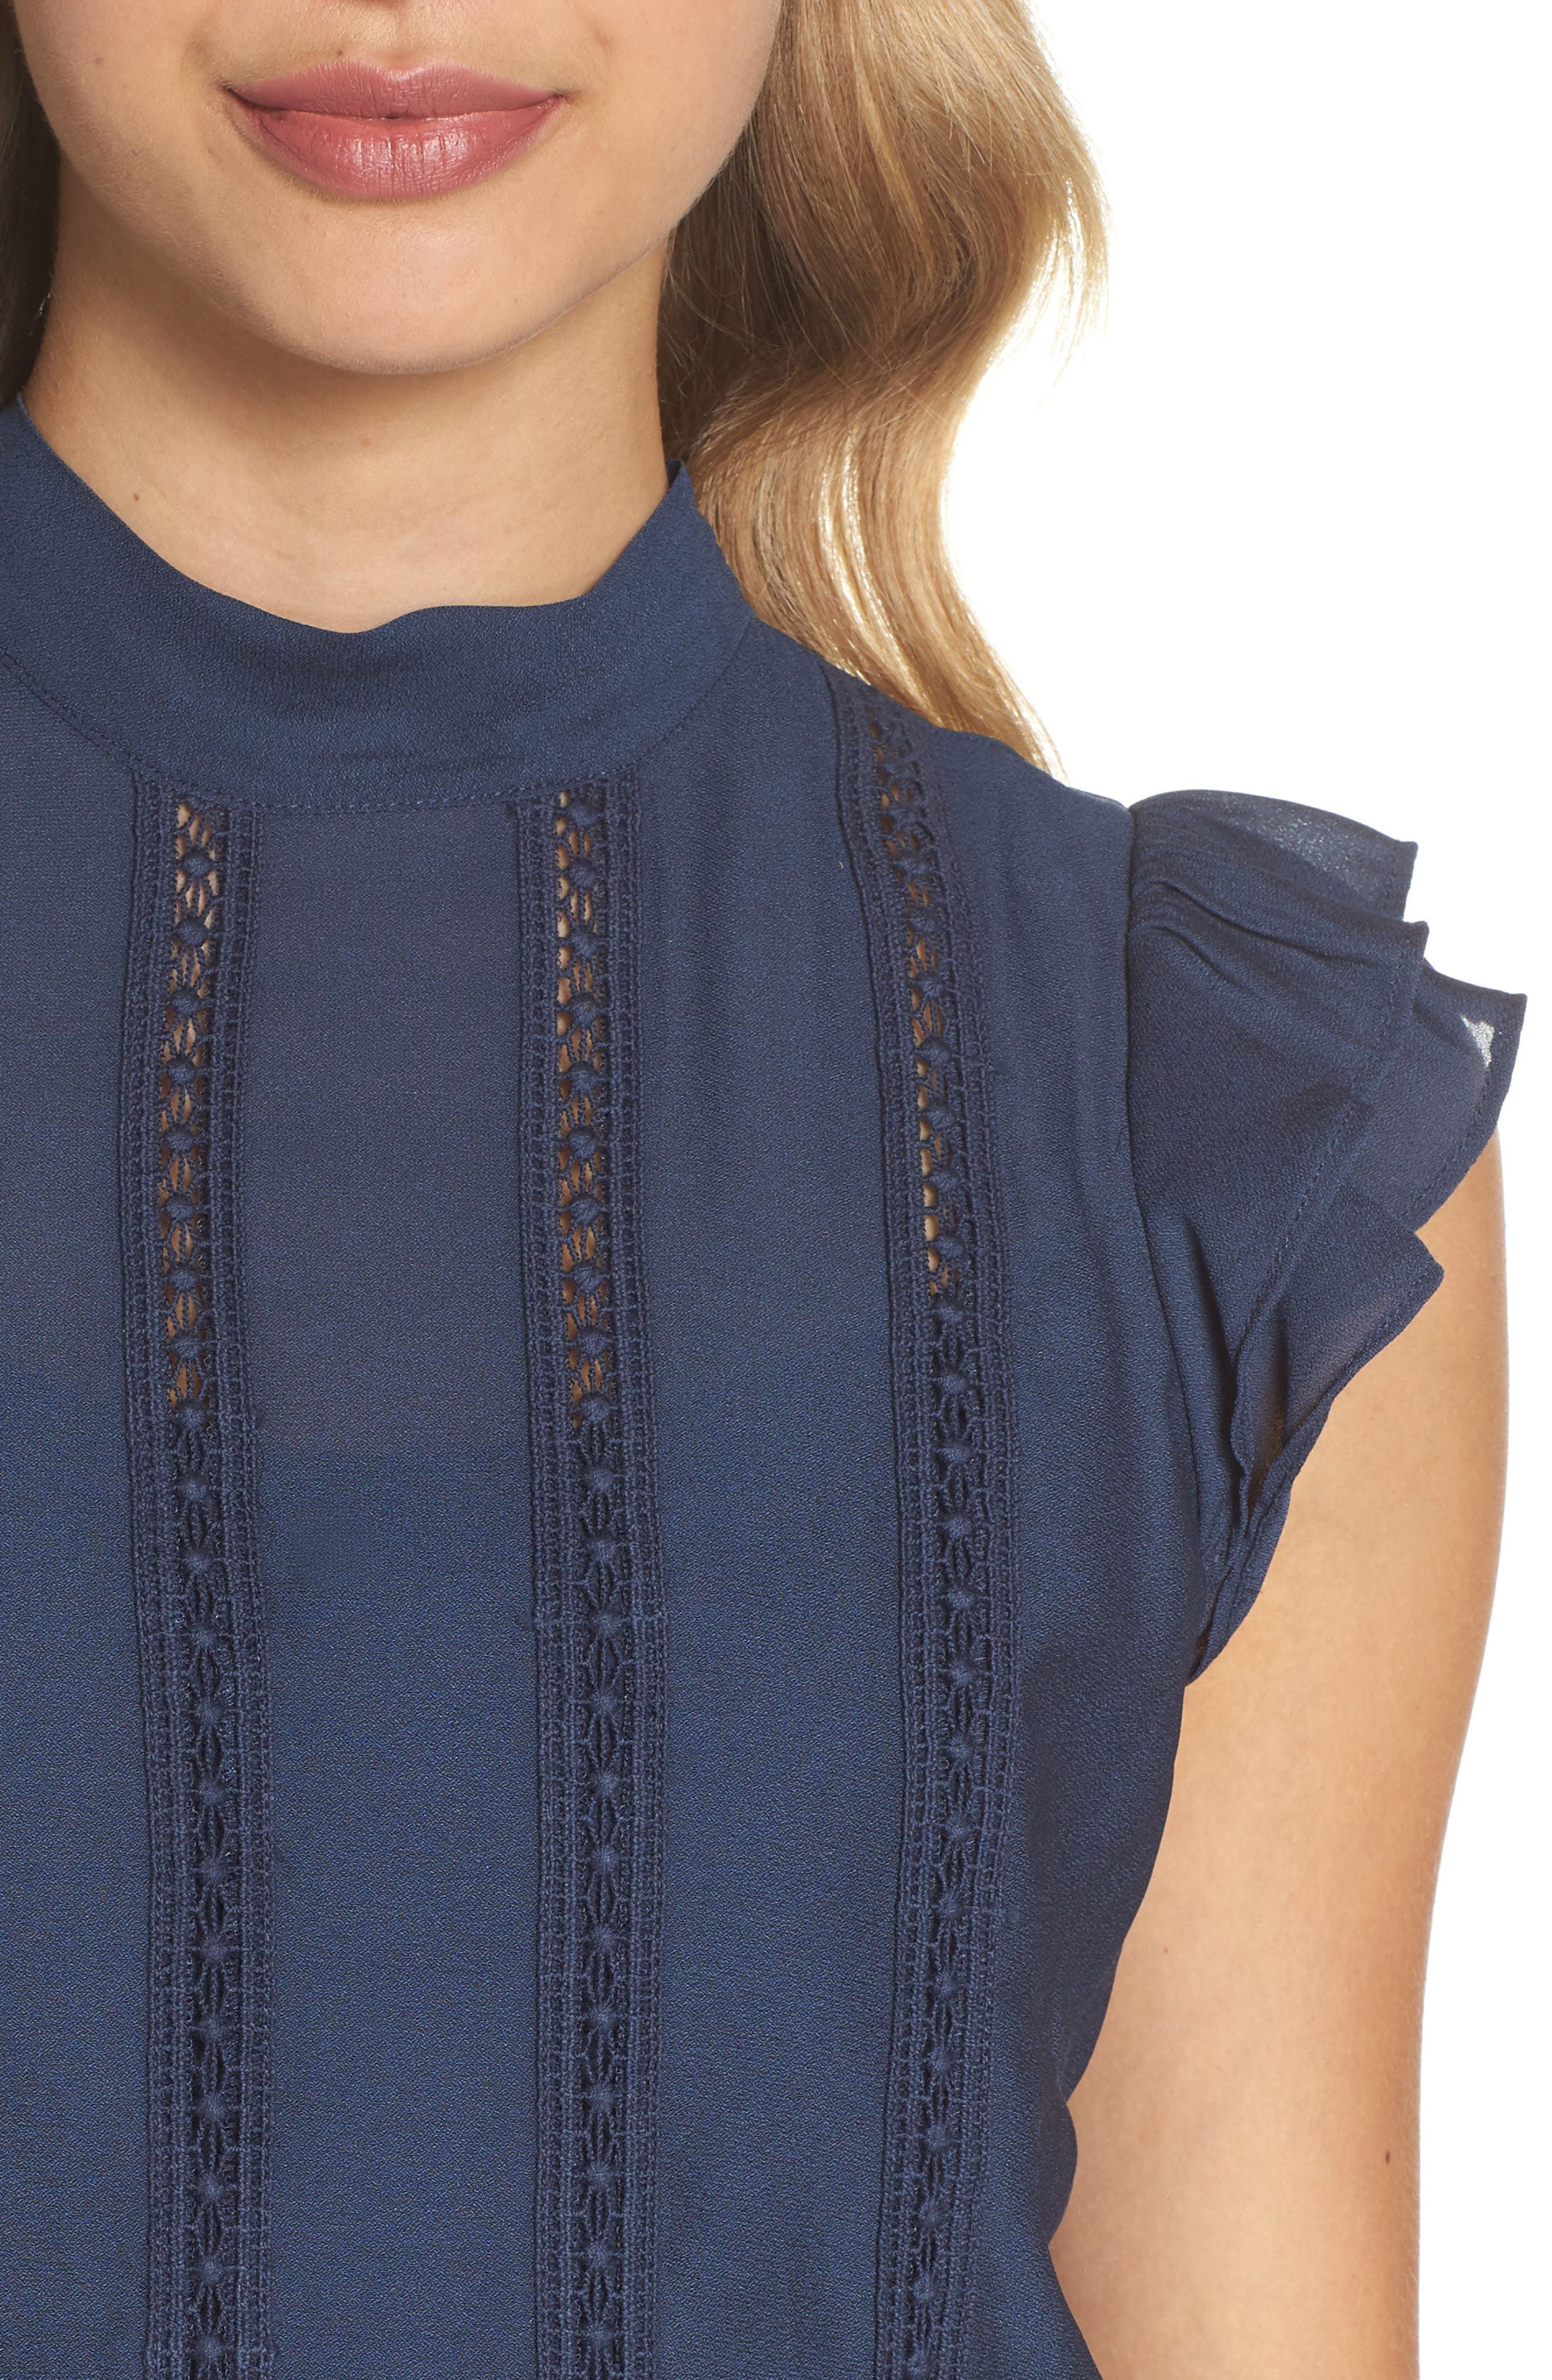 Embroidered Bodice A-Line Dress,                             Alternate thumbnail 4, color,                             440